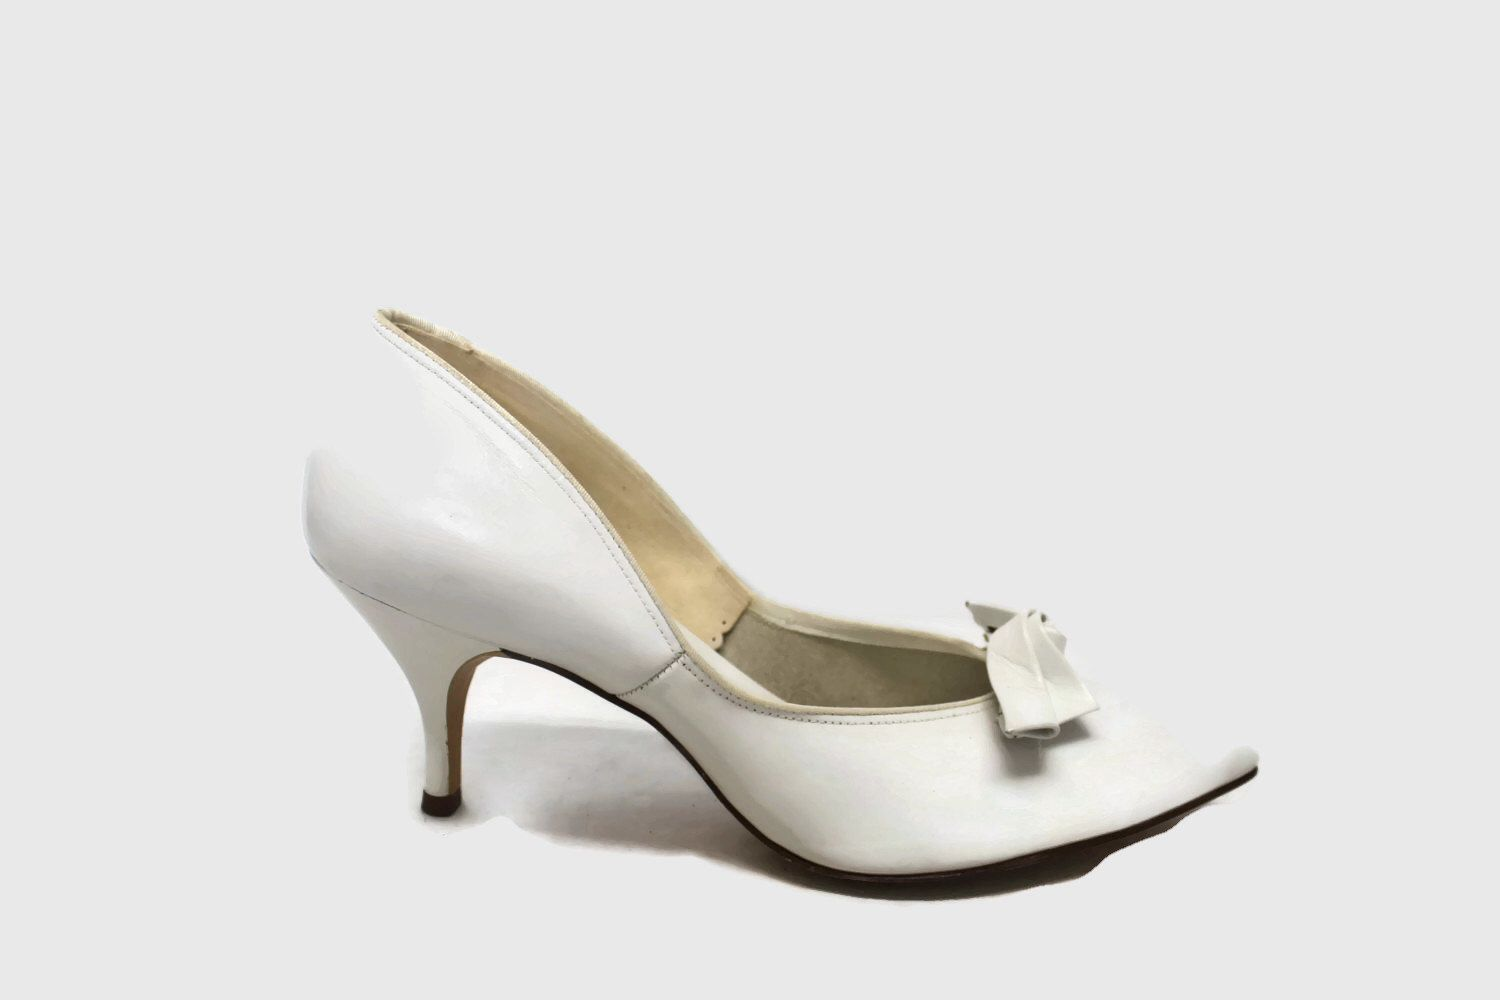 Nos 50s Shoes 2 Prs Of 1950s High Heels Ivory White 1950s Pumps Size 6 Zapatos Victorianos Zapatos Victoriano